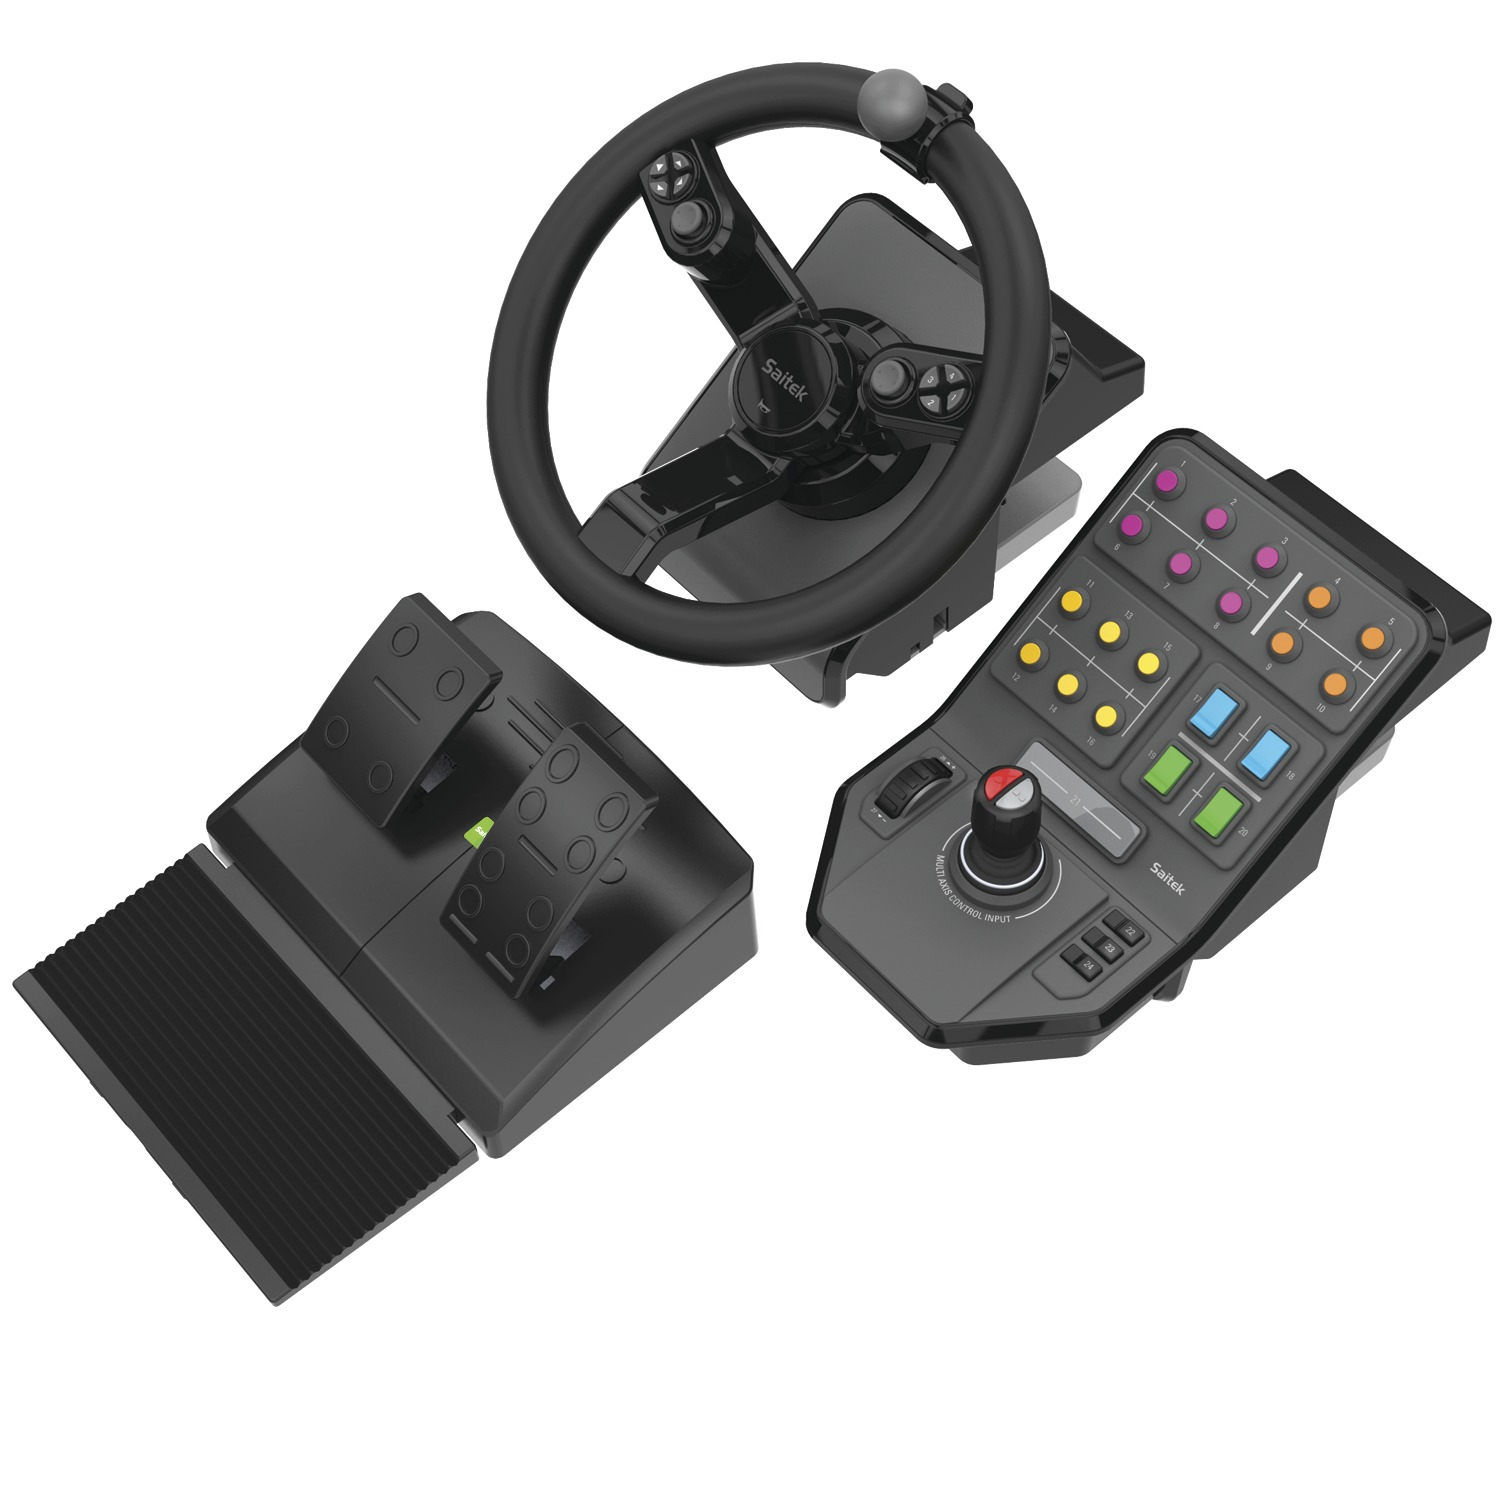 99a5c2a1f6c Logitech Farming Simulator Controller   PC   On Sale Now   at Mighty ...